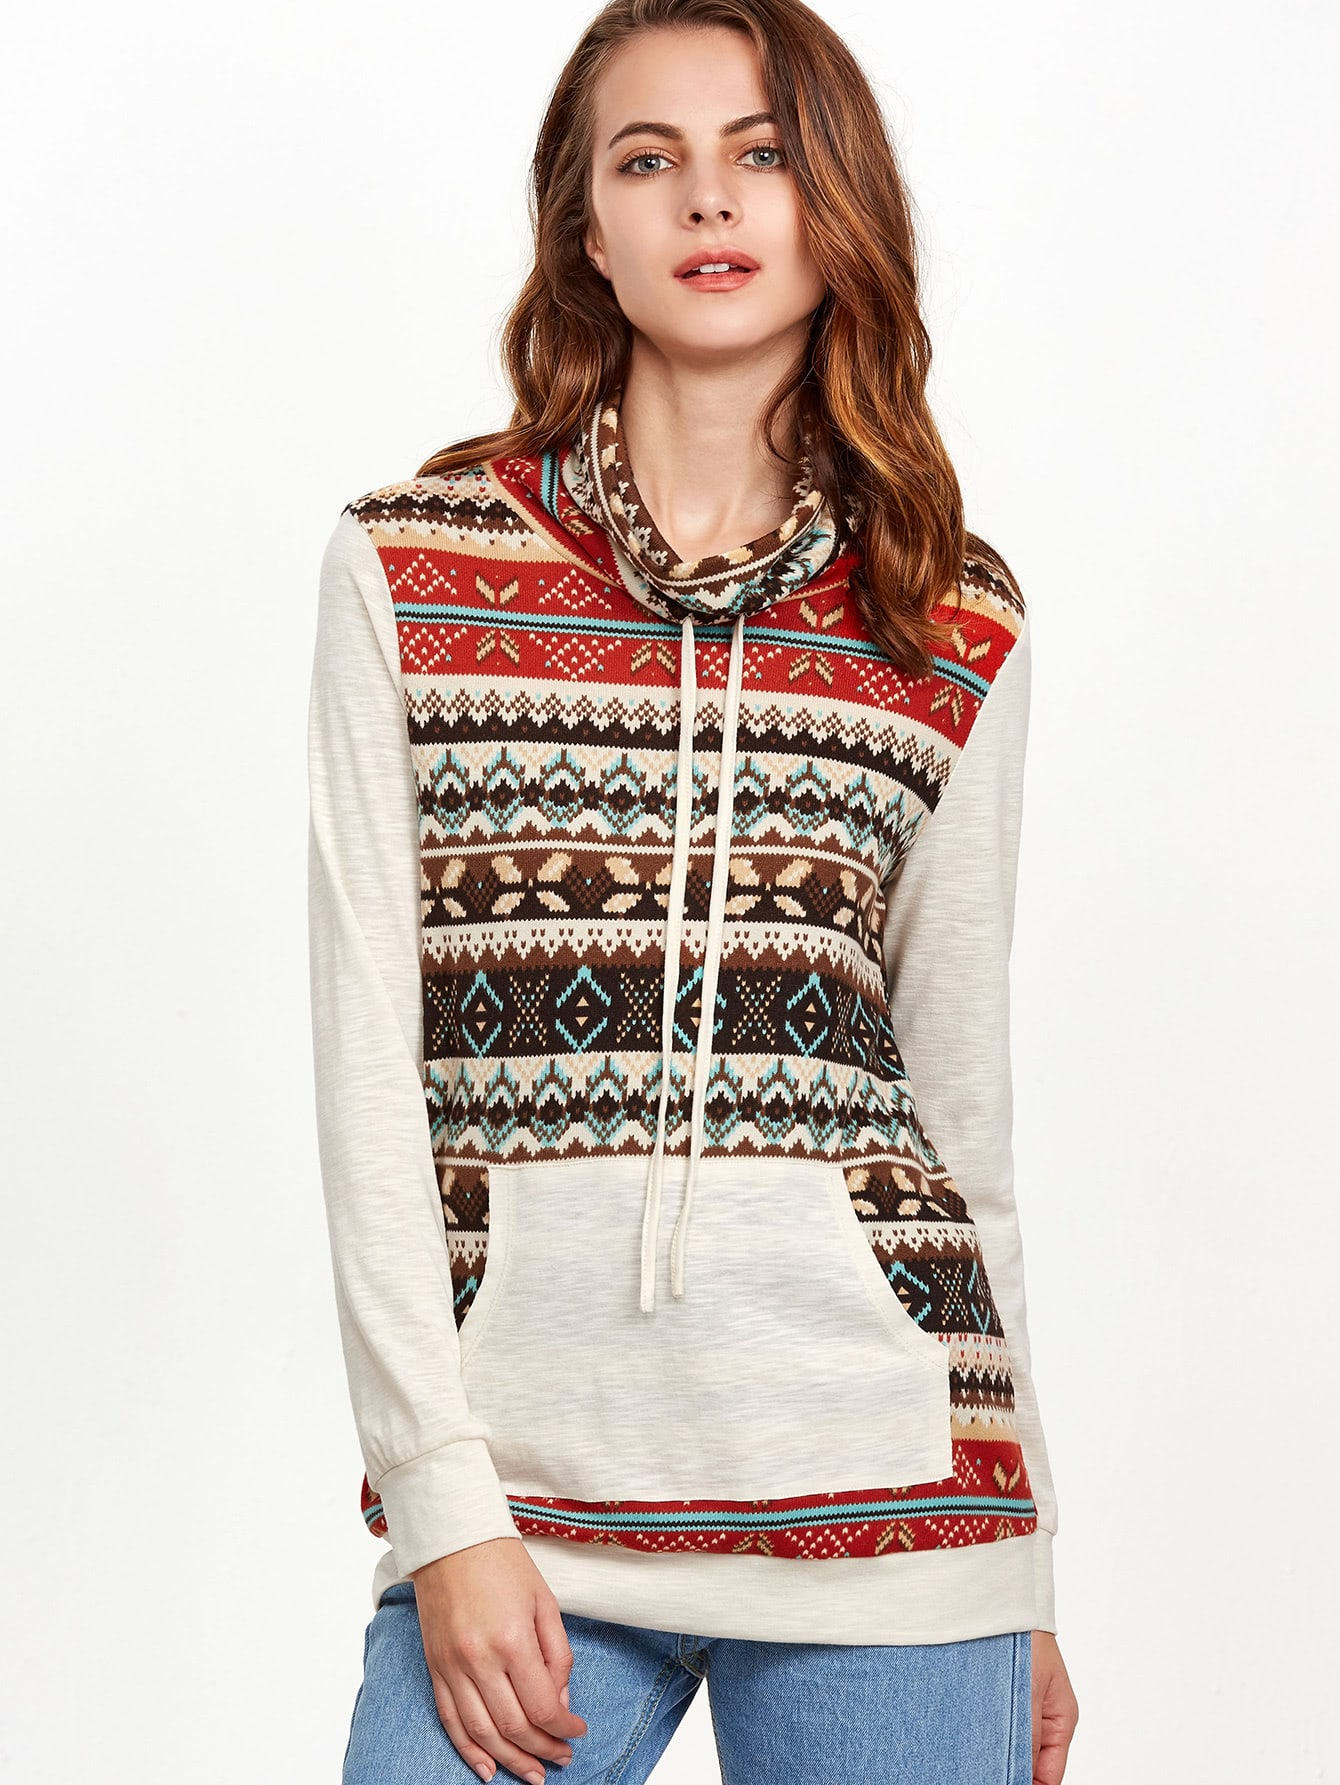 Multicolor Tribal Print Drawstring Cowl Neck SweatshirtMulticolor Tribal Print Drawstring Cowl Neck Sweatshirt<br><br>color: Multicolor<br>size: L,M,S,XS